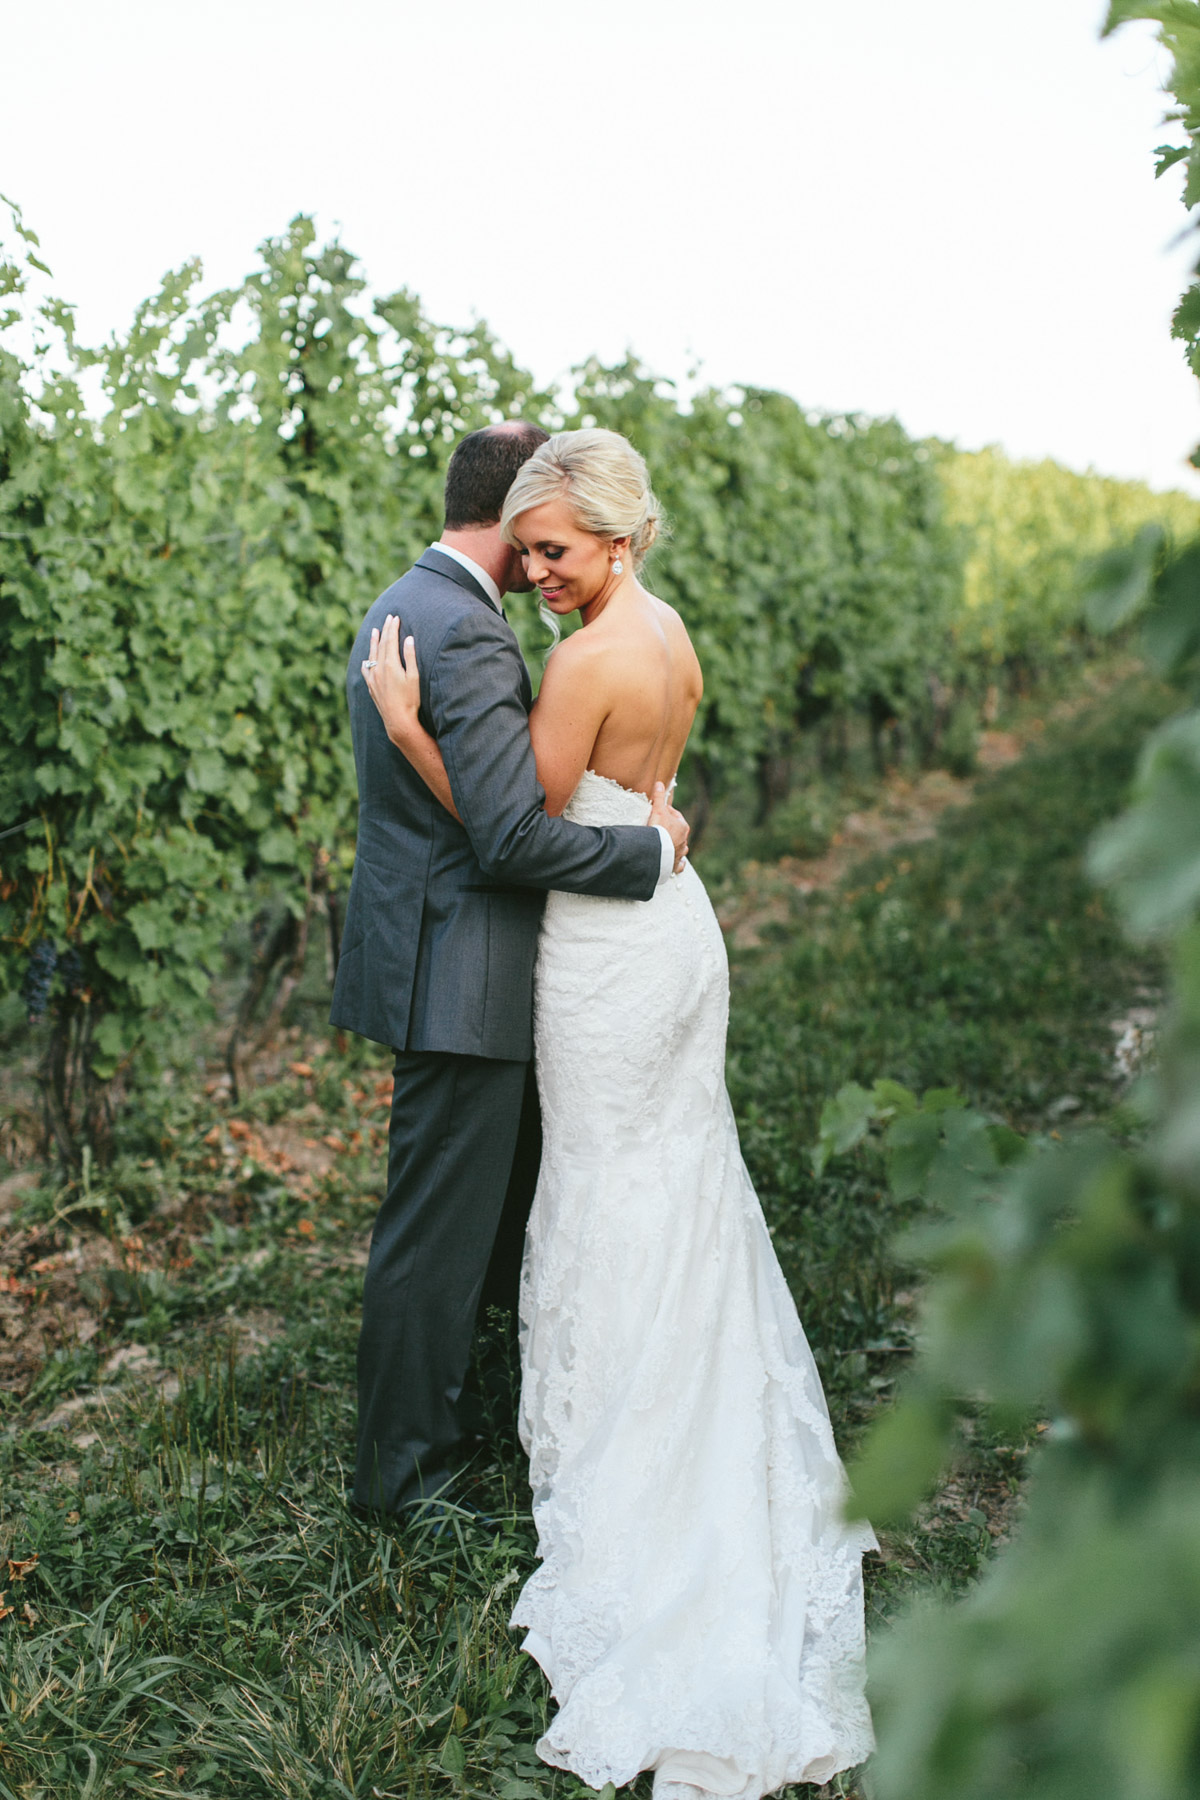 brandon-scott-photography-vineyard-bride-swish-list-stratus-vineyard-niagara-on-the-lake-wedding-41.jpg